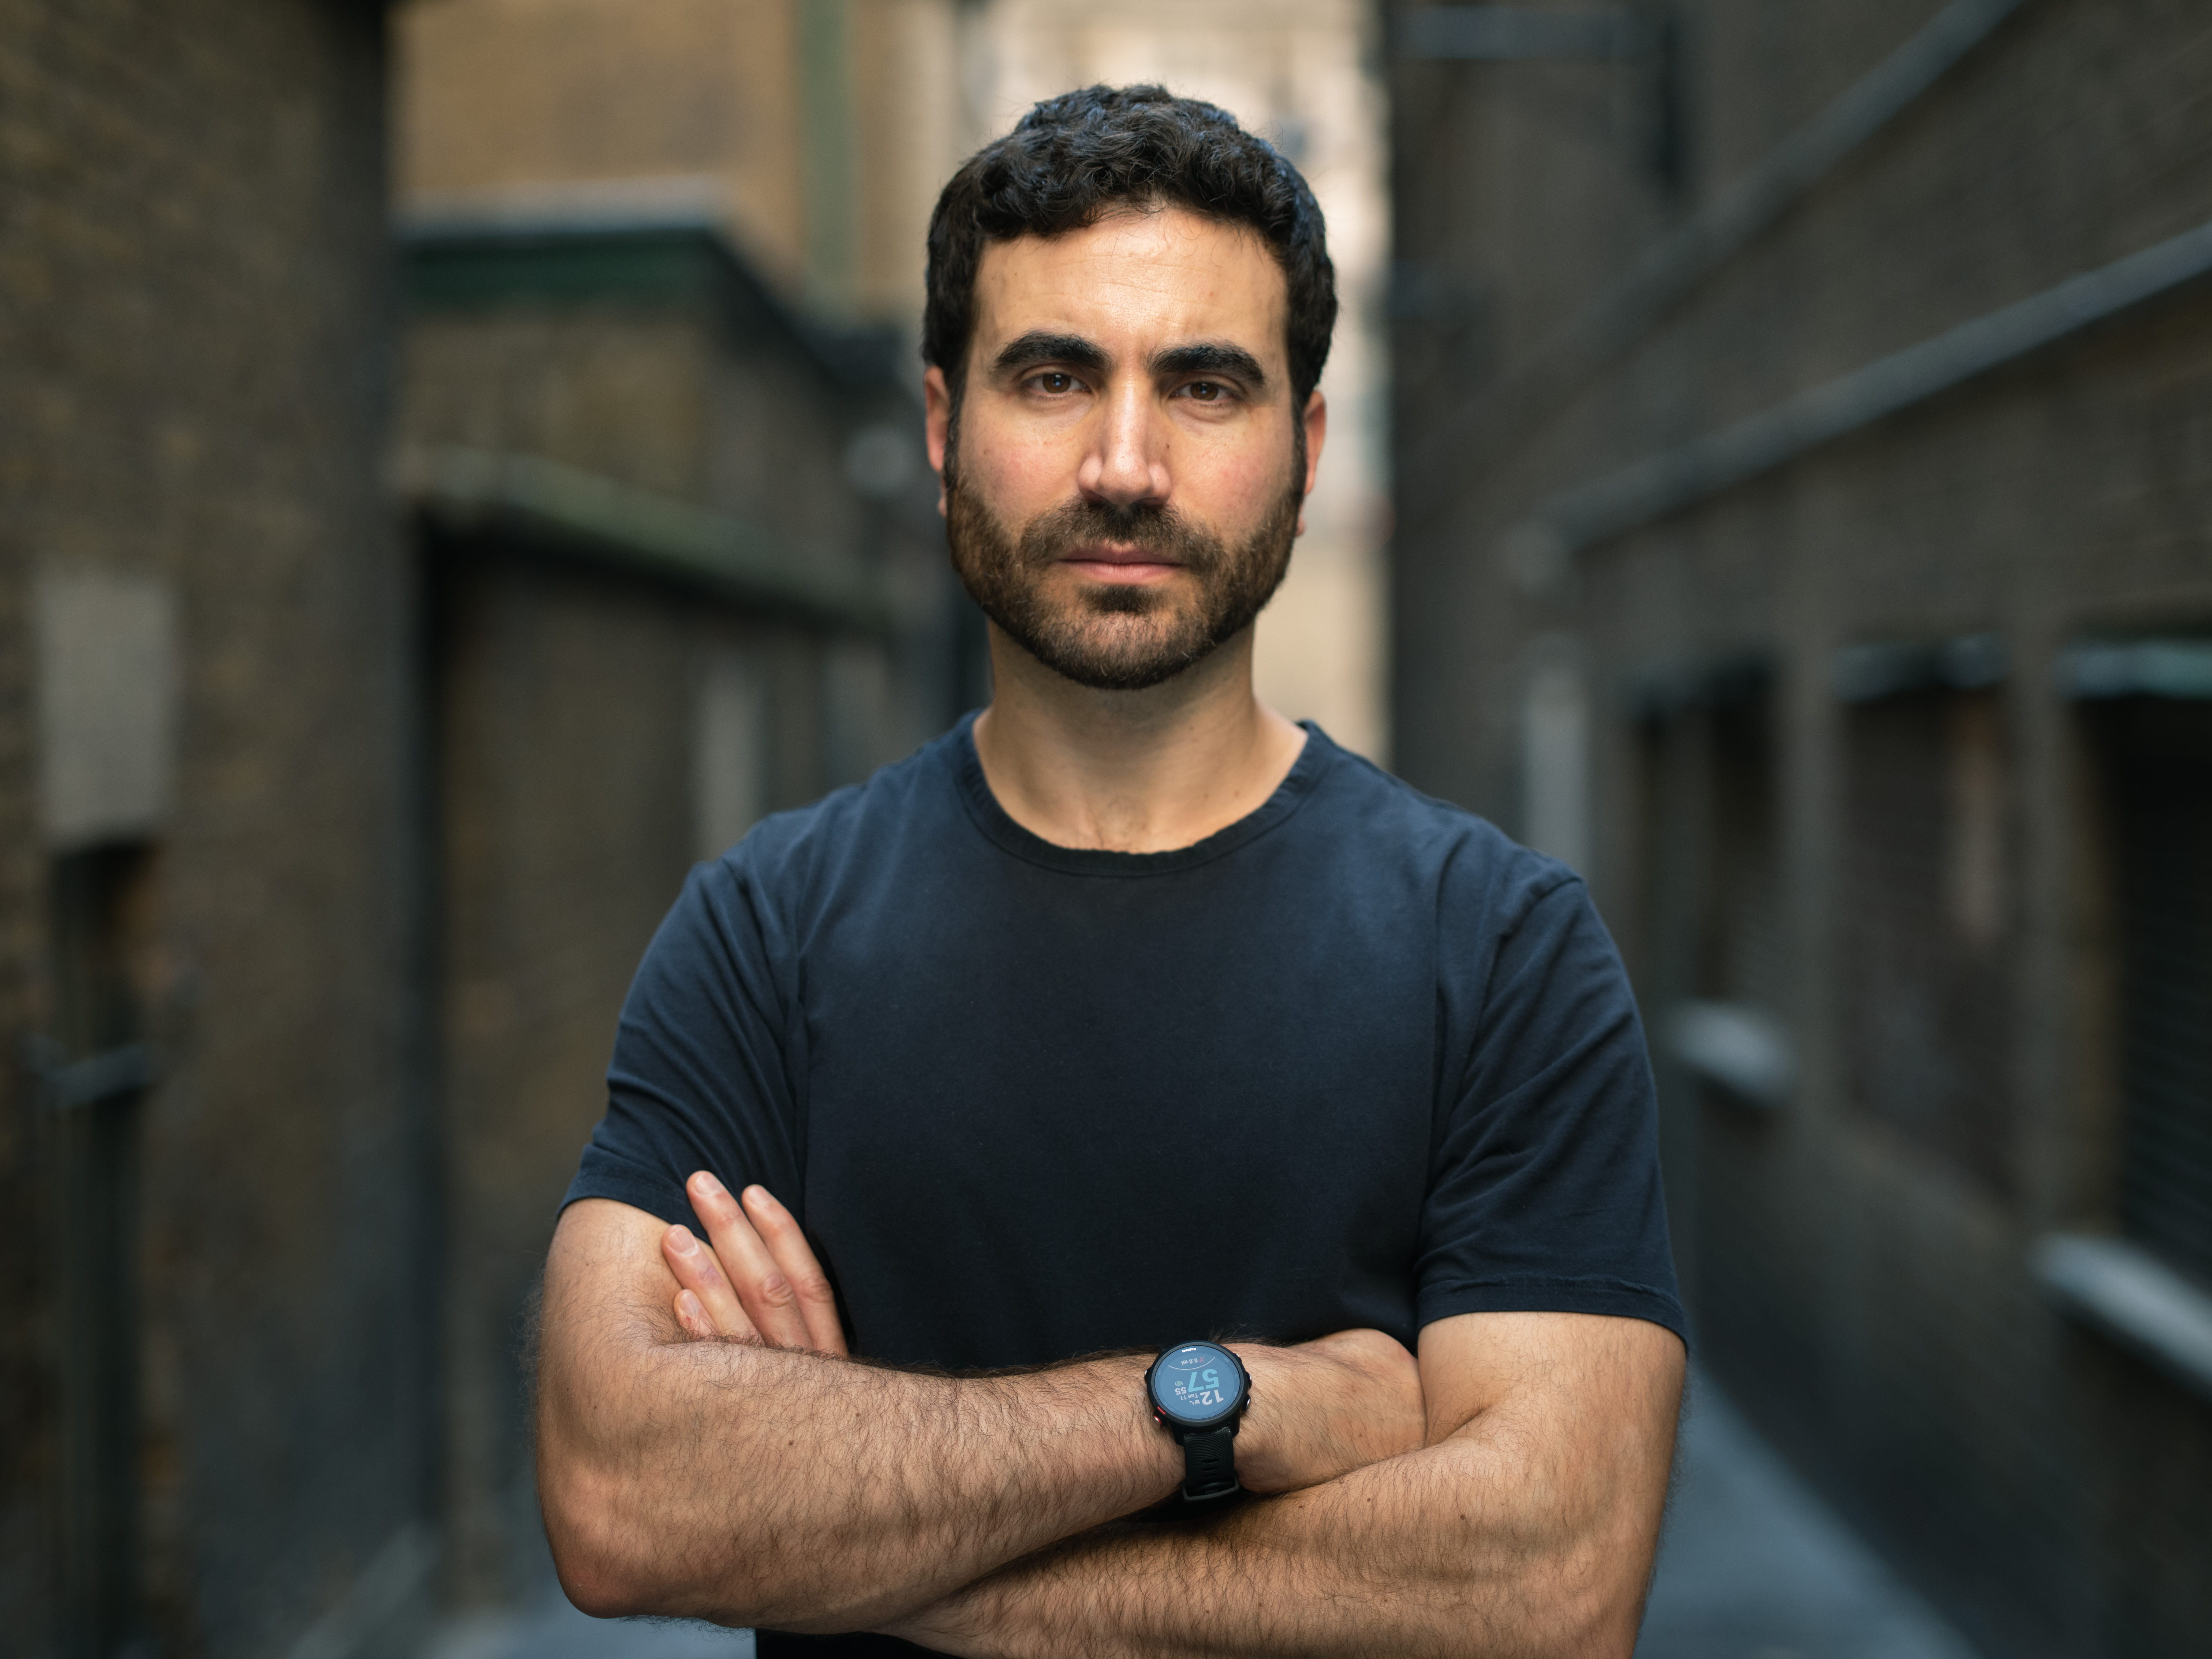 Soulmates & Ted Lasso's Brett Goldstein Wants to Talk About Love ...